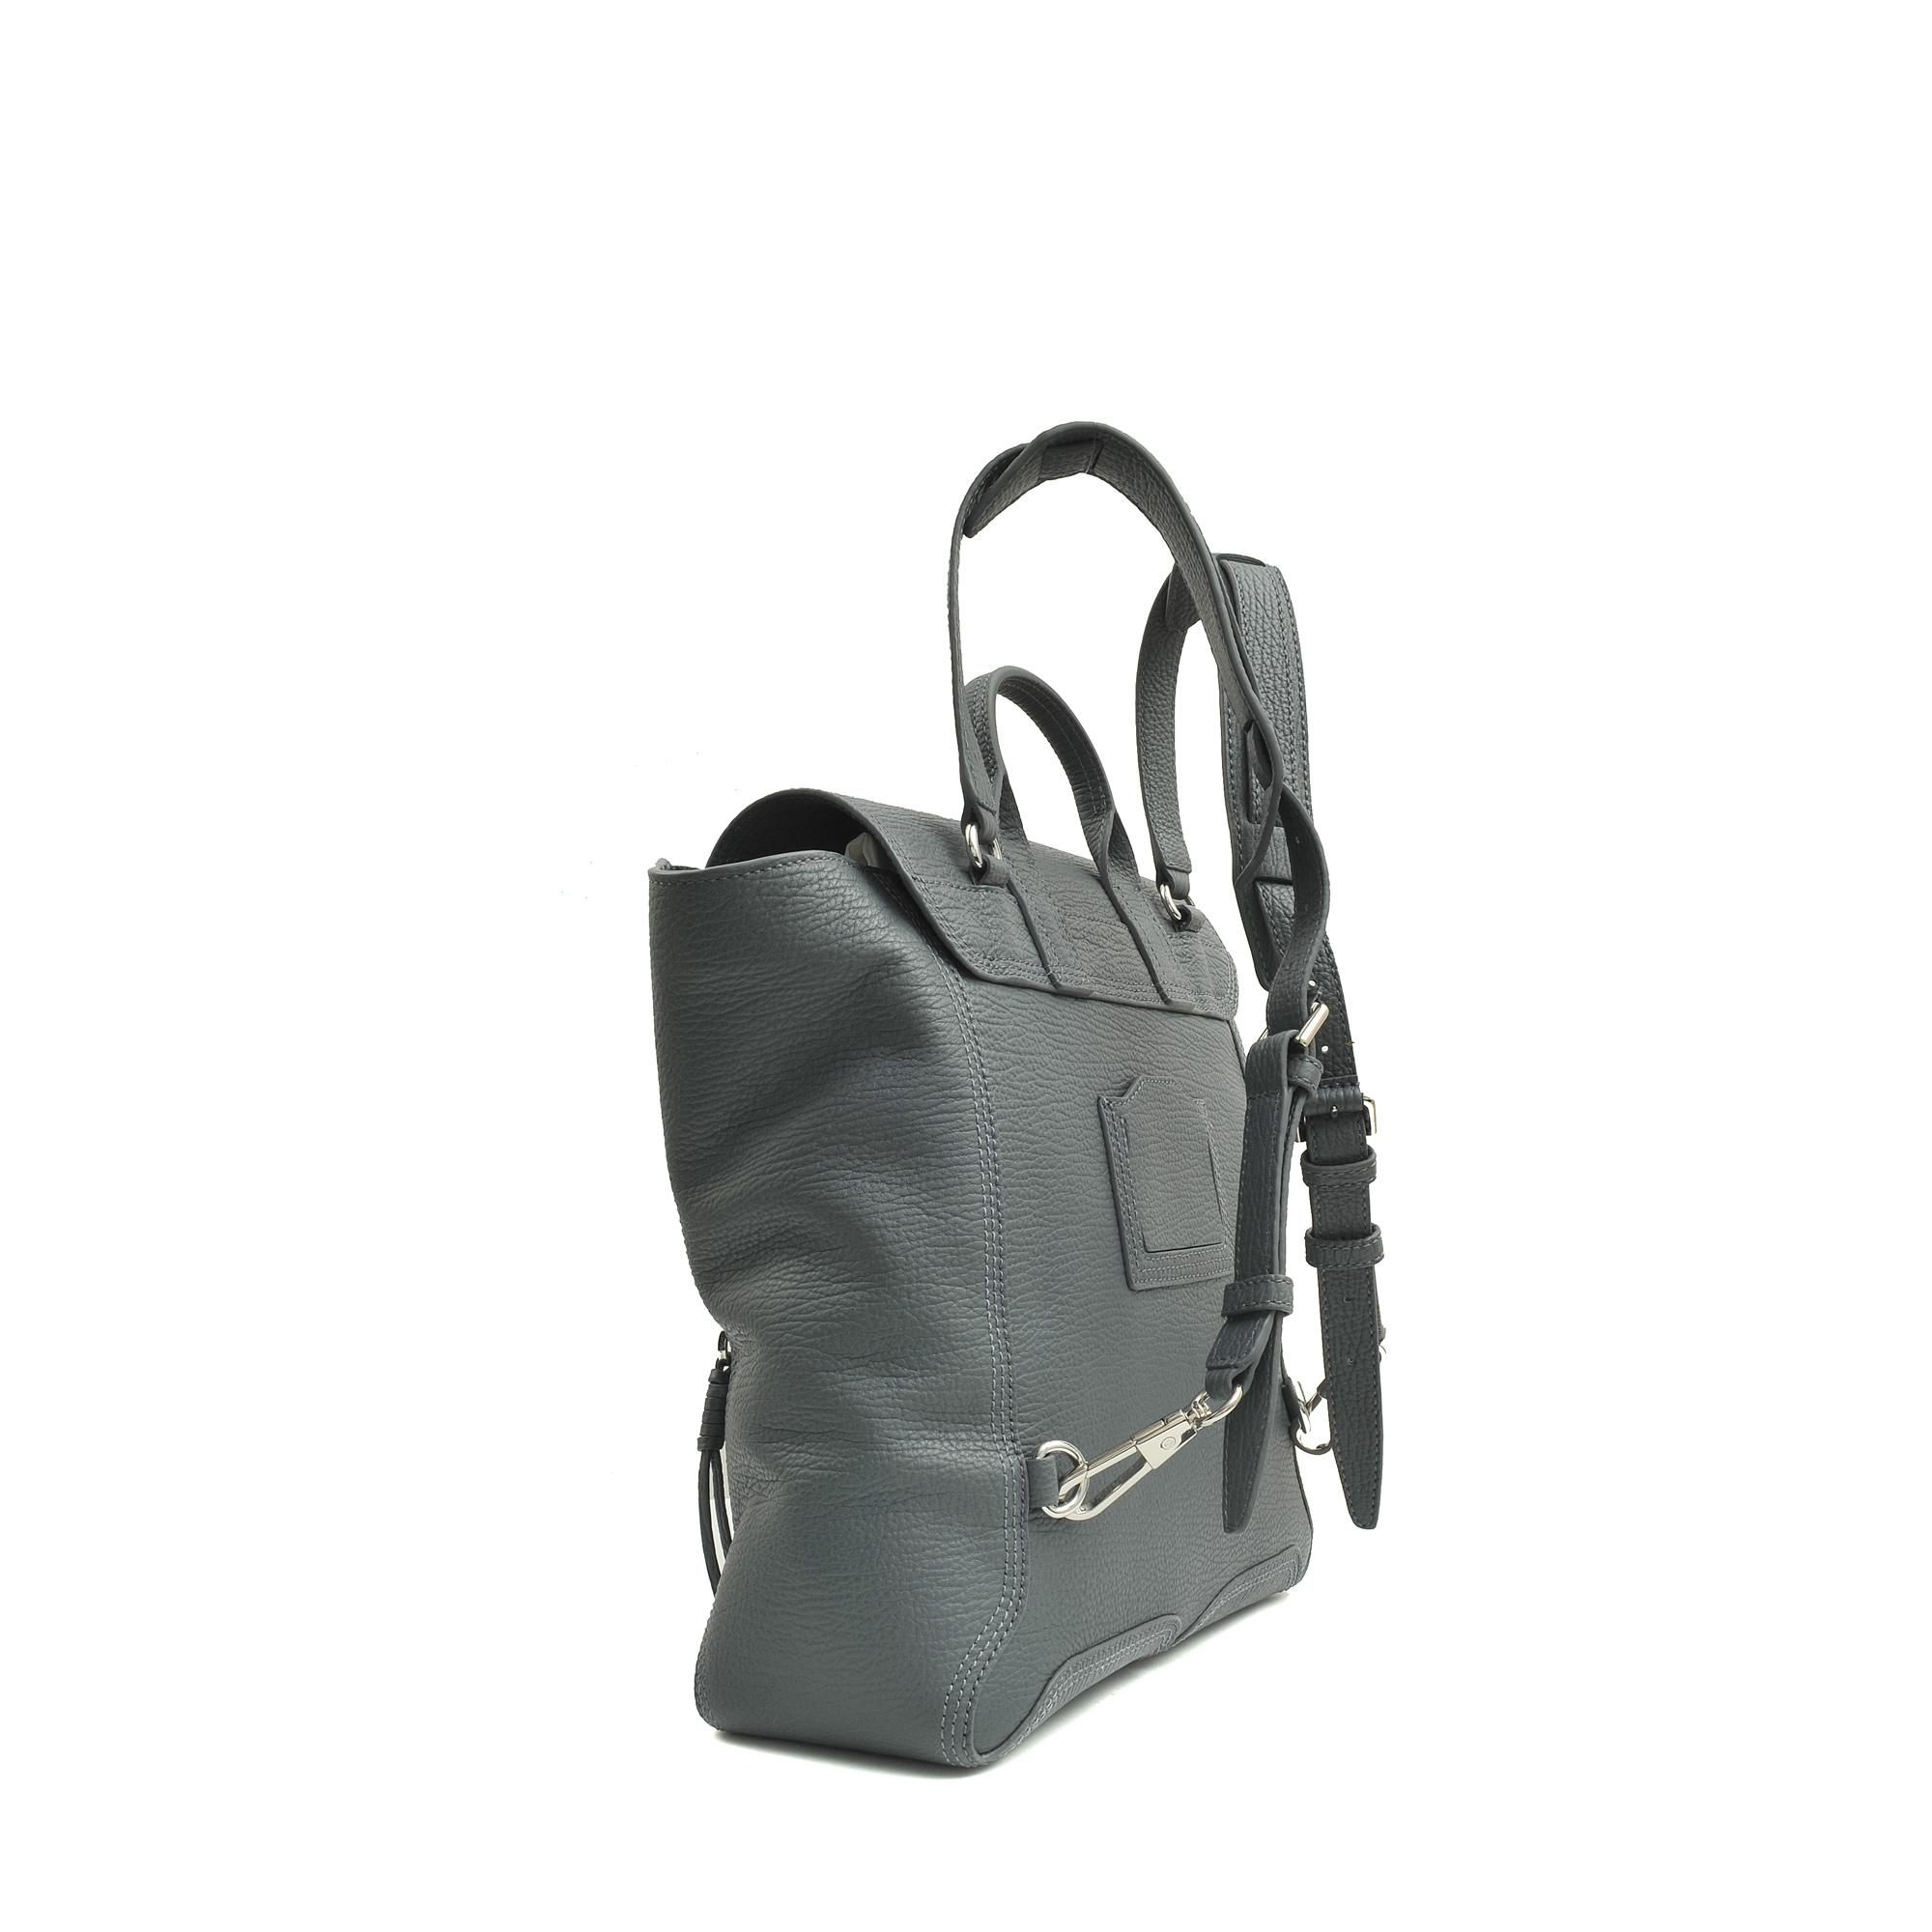 Luxury designer handbags eshop for women - MONNIER Frères